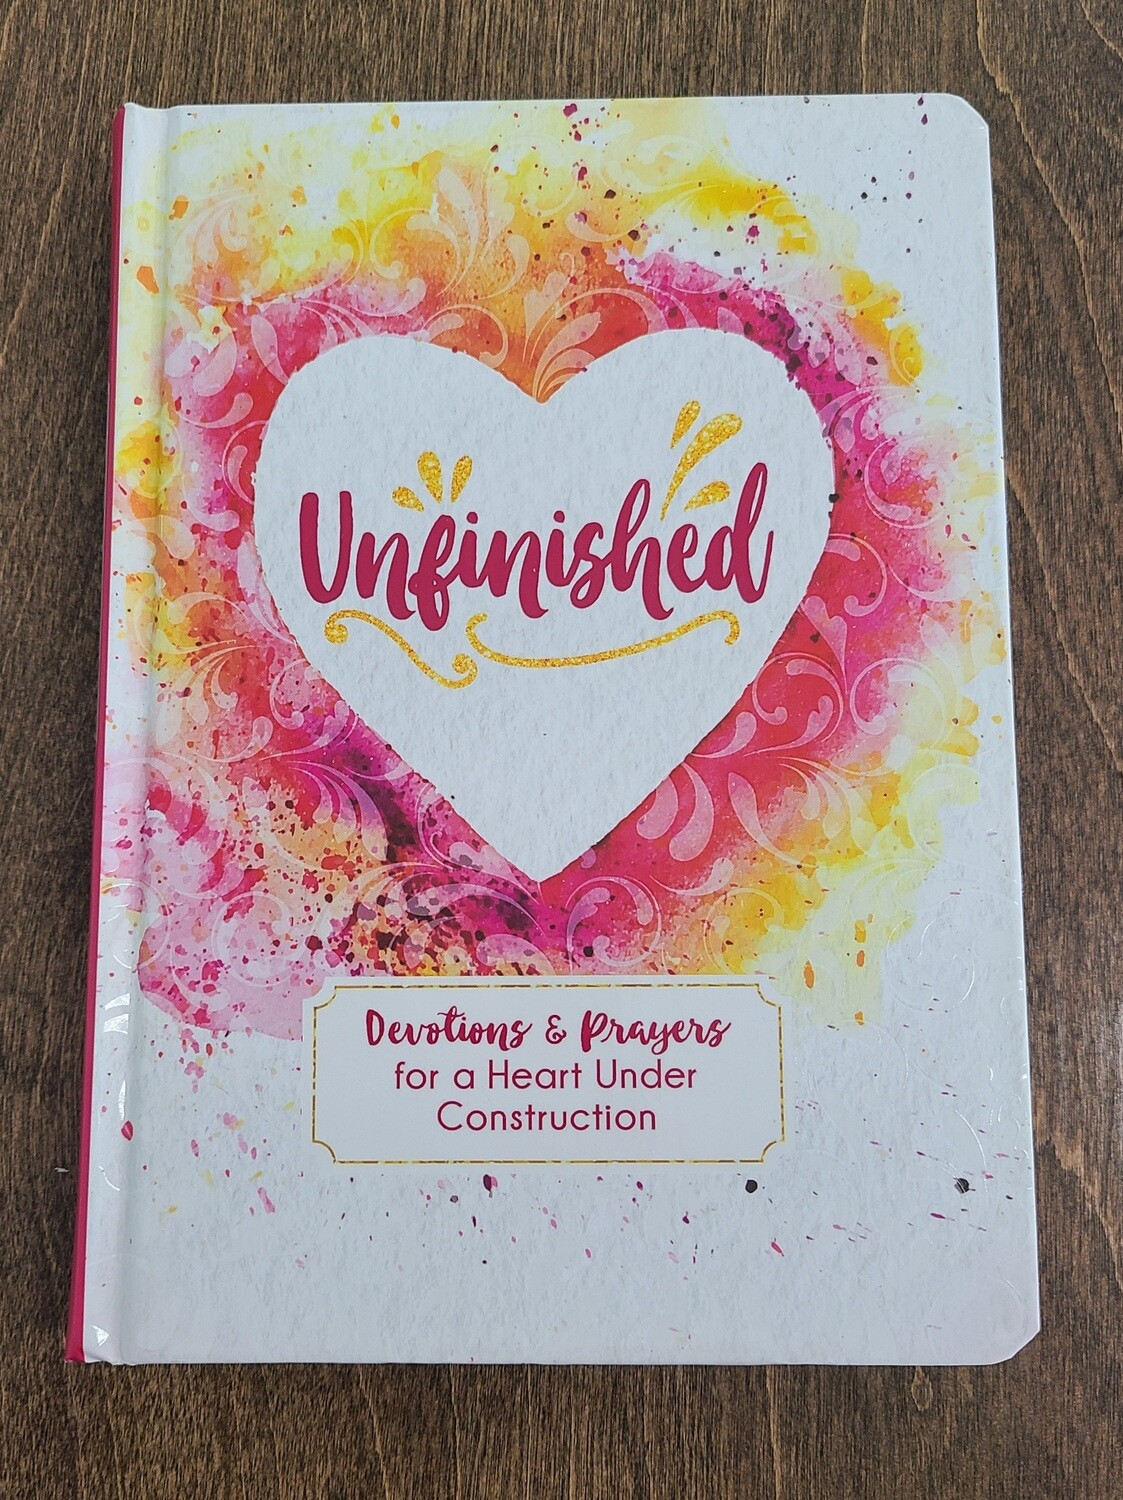 Unfinished: Devotions and Prayers for a Heart Under Construction by Linda Hang